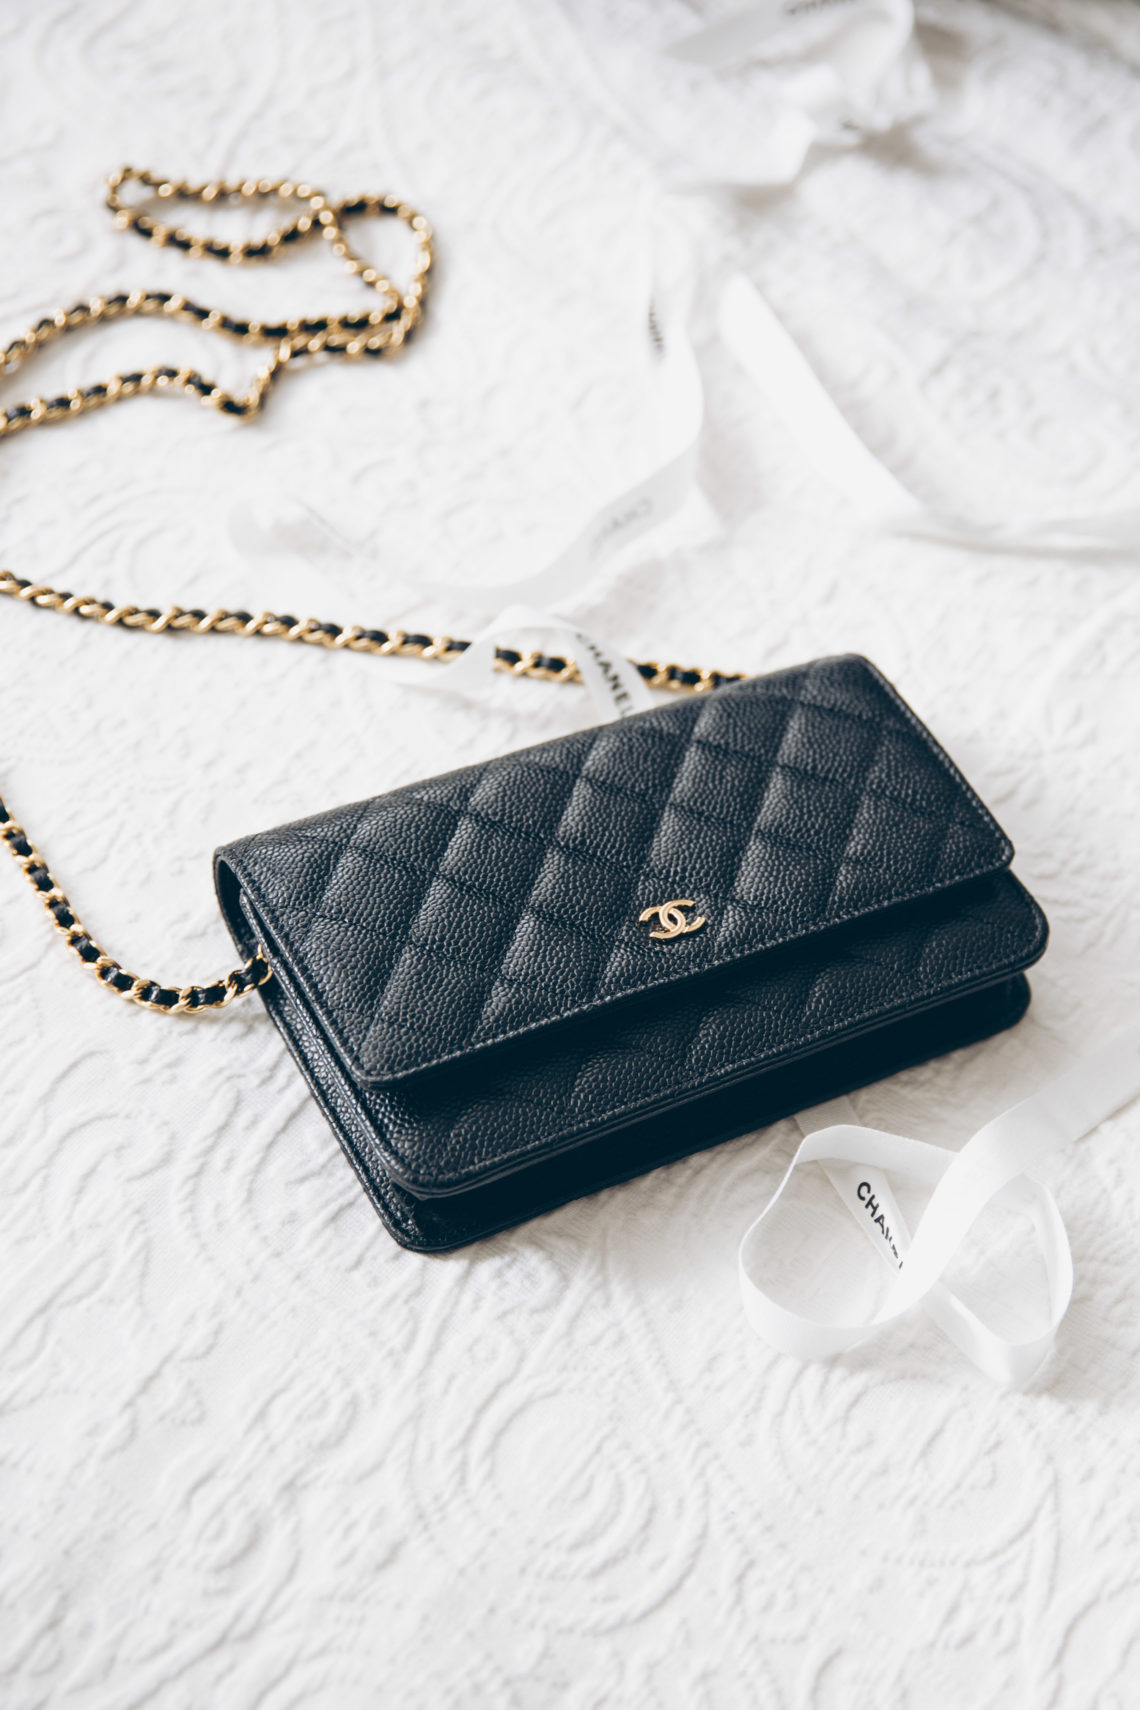 9a46c2f0fbd7 Review: Chanel Wallet On Chain WOC | you rock my life